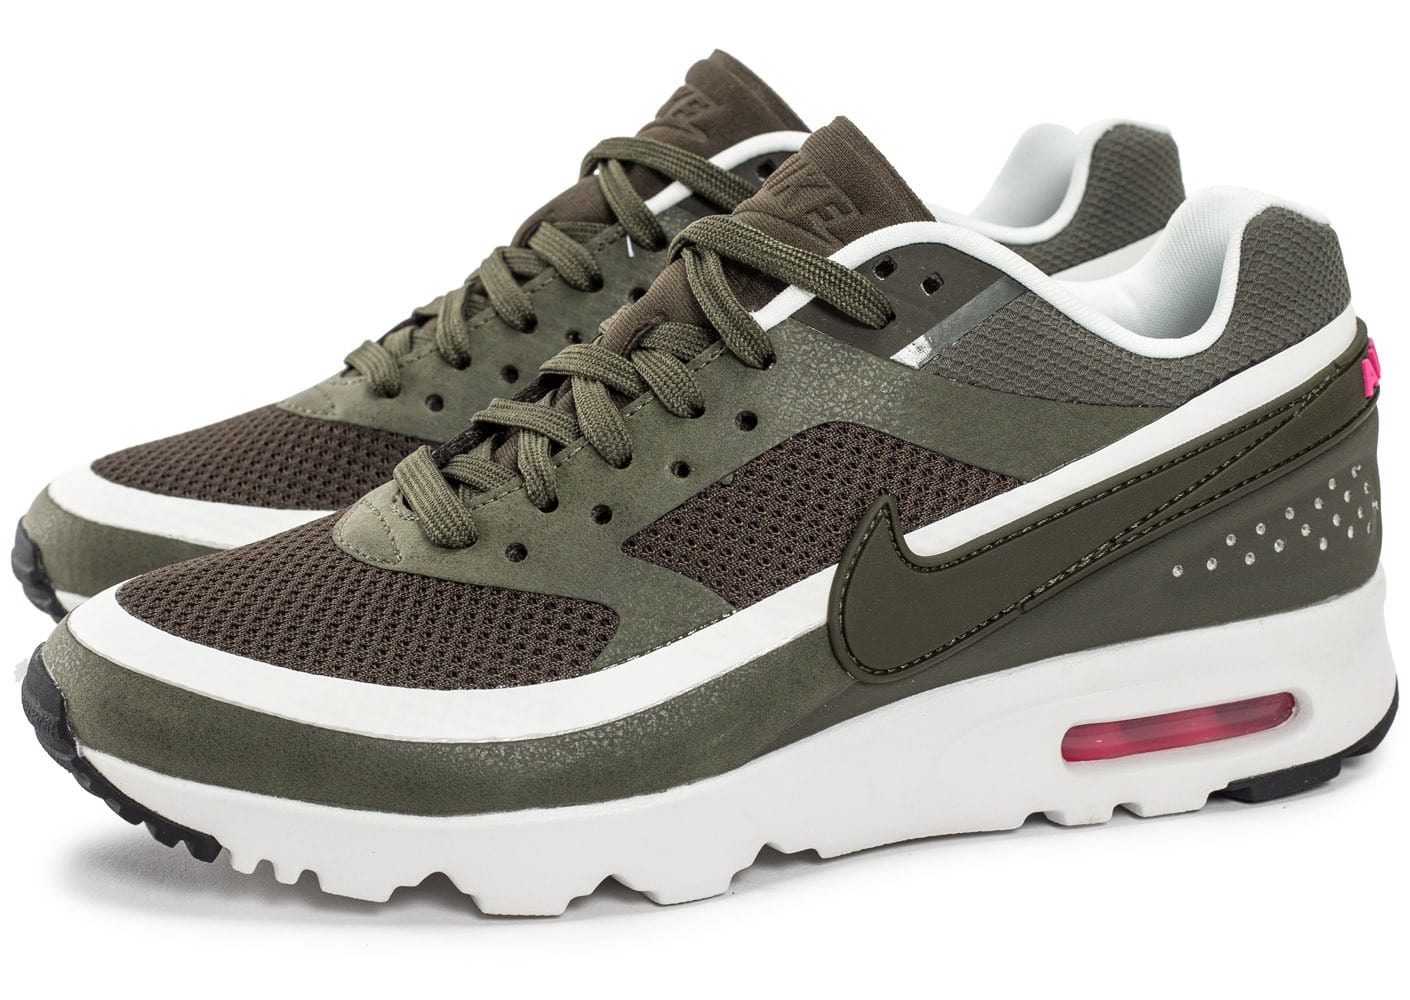 new specials new specials release info on Nike Air Max BW Ultra W Olive - Chaussures Baskets femme - Chausport